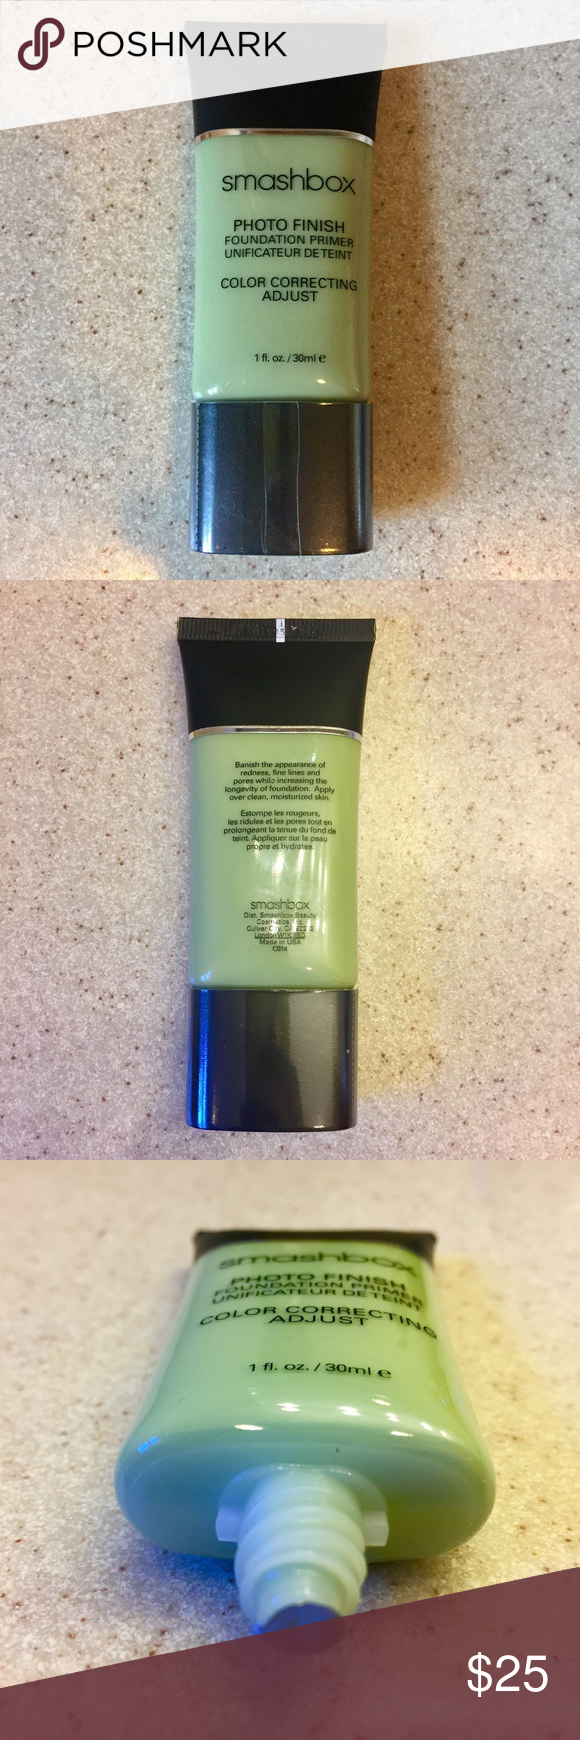 Smashbox Photo Finish Color Correcting Primer This is the